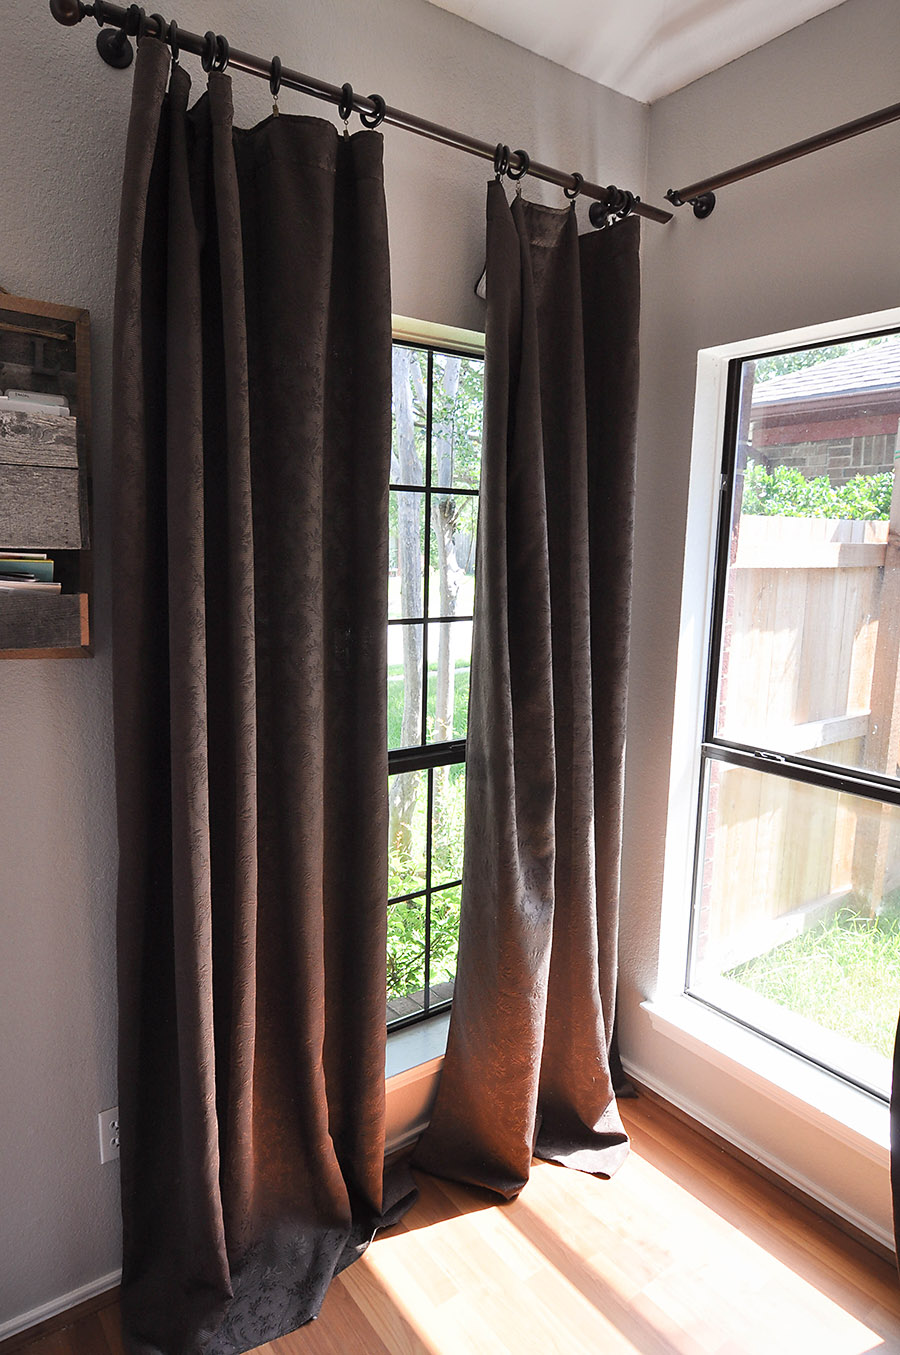 How to Make DIY No-Sew Bleached Drop Cloth Curtains - Our Handcrafted Life